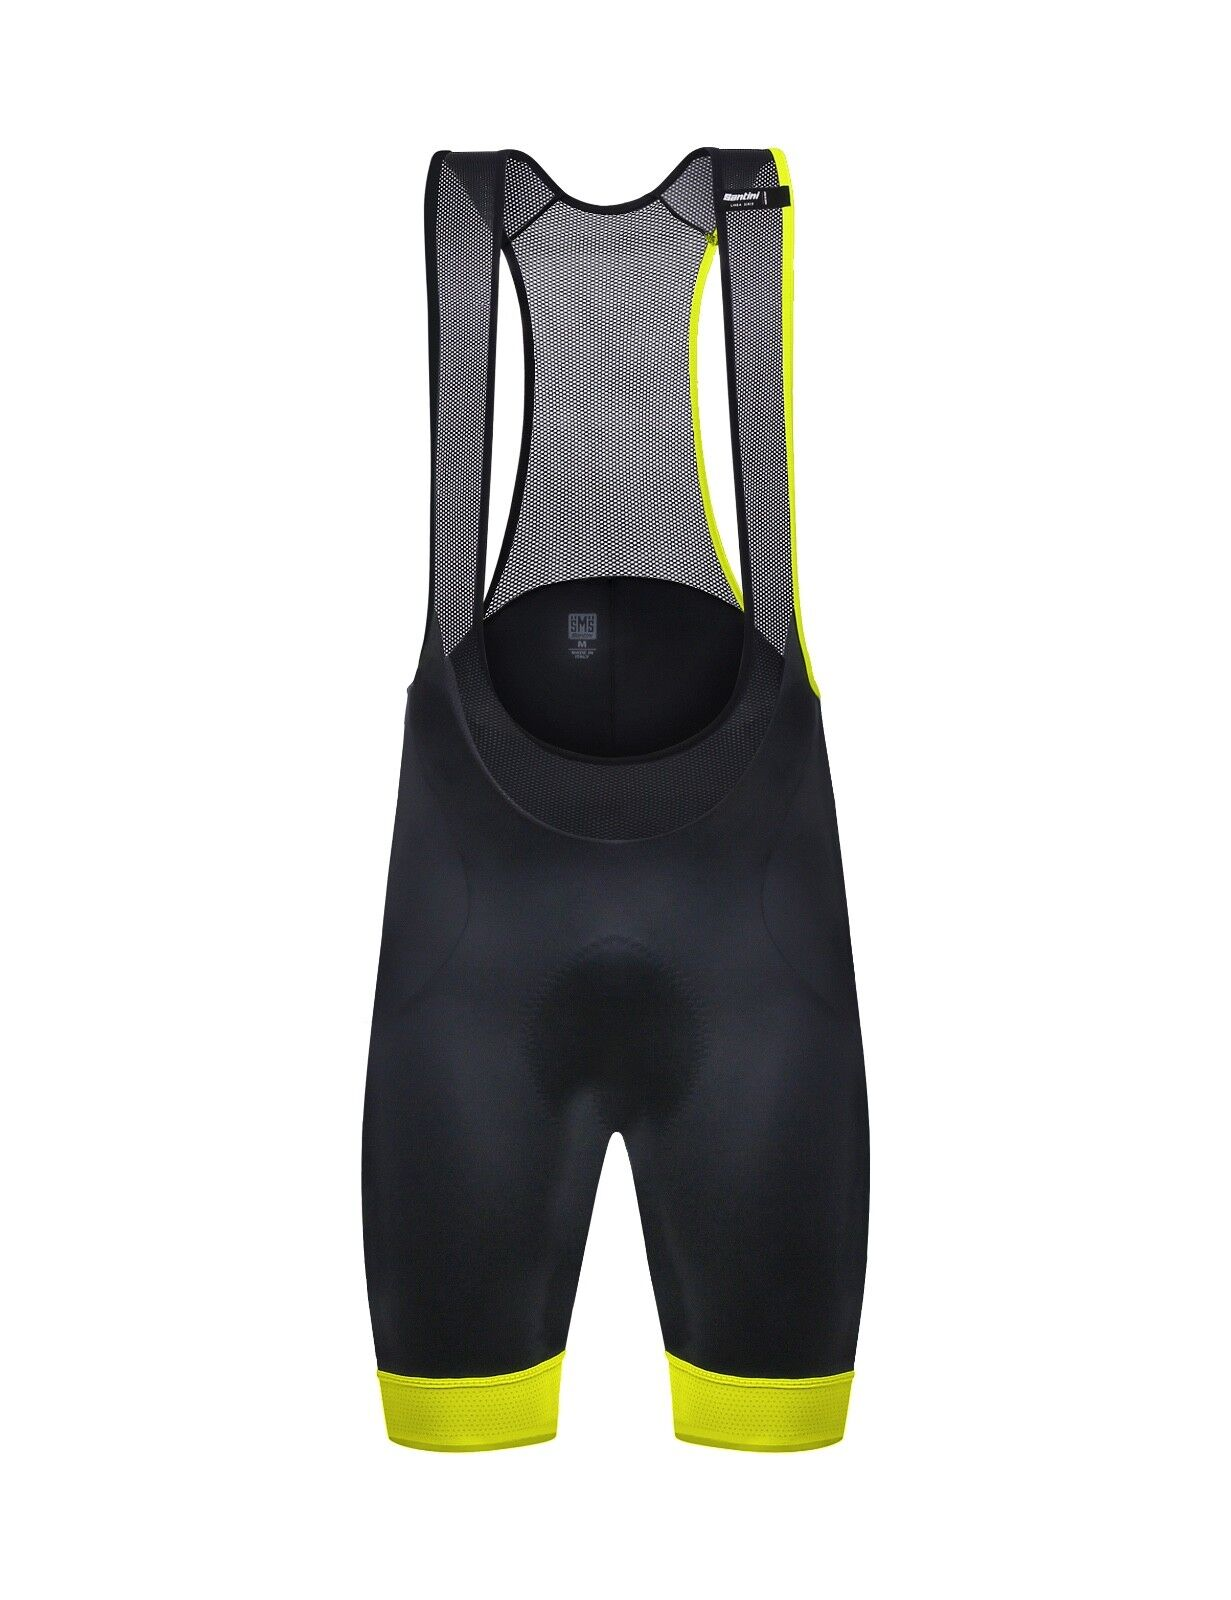 SALOPETTE SANTINI SCATTO black yellow FLUO Size XL